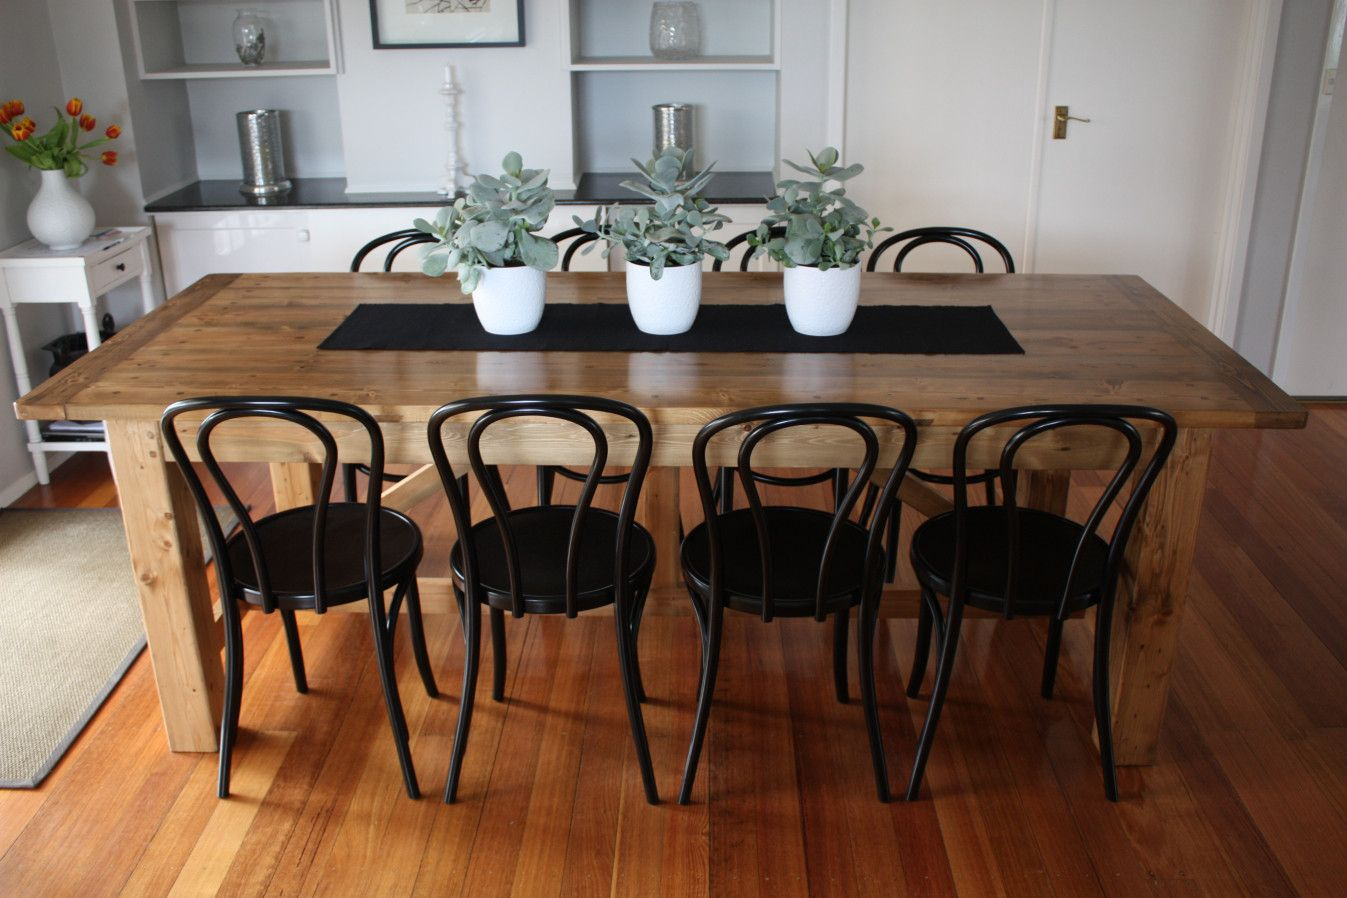 2019 Dining Table And Chairs Sydney Luxury Modern Furniture Check More At Http